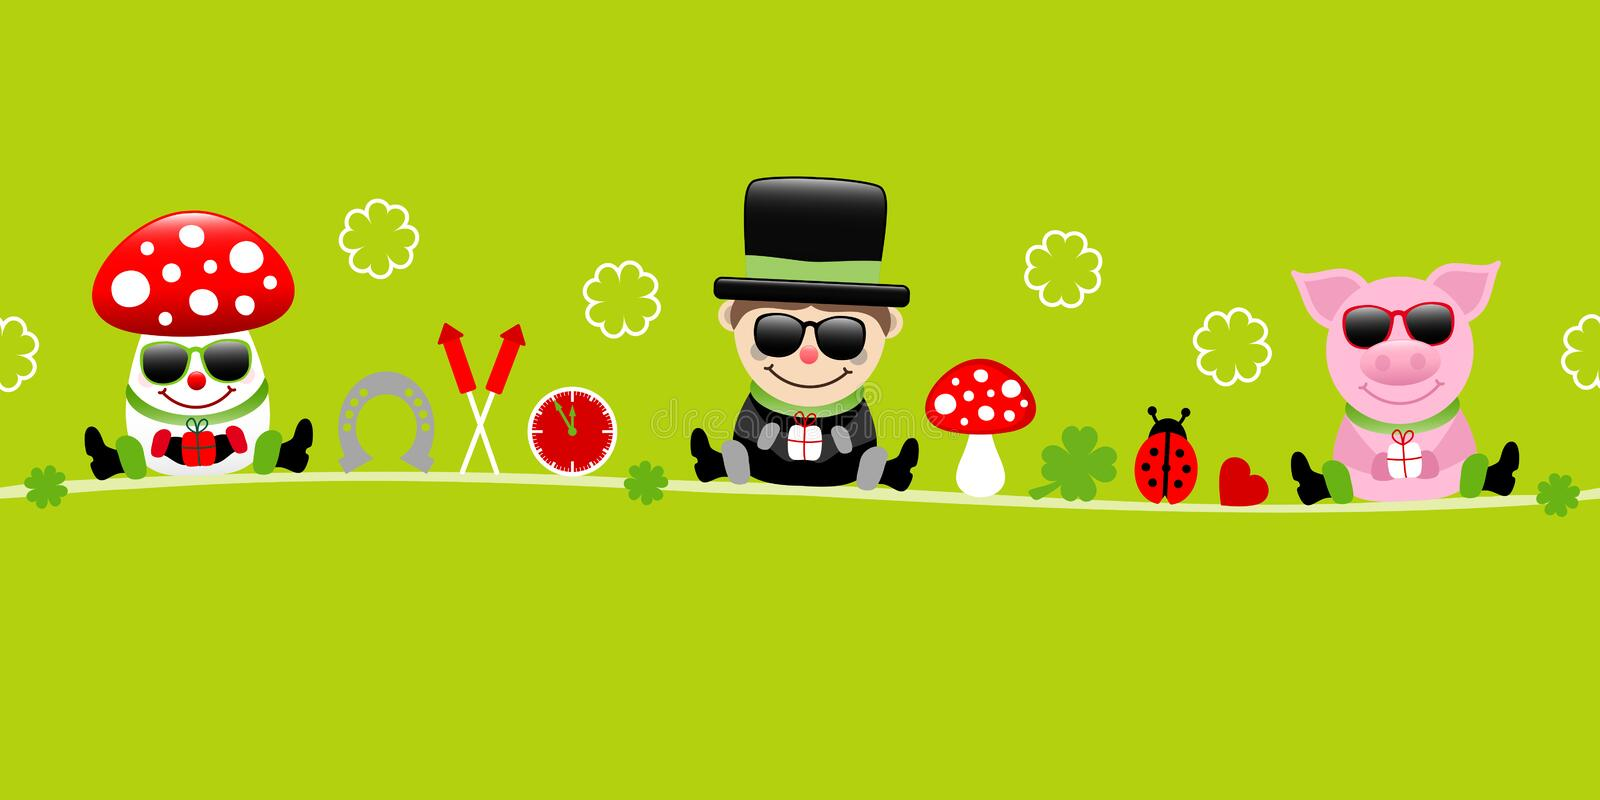 Fly Agaric Chimney Sweep And Pig With Sunglasses Icons New Years Eve Green. Cute Fly Agaric Chimney Sweep And Pig With Sunglasses Icons New Years Eve Green vector illustration